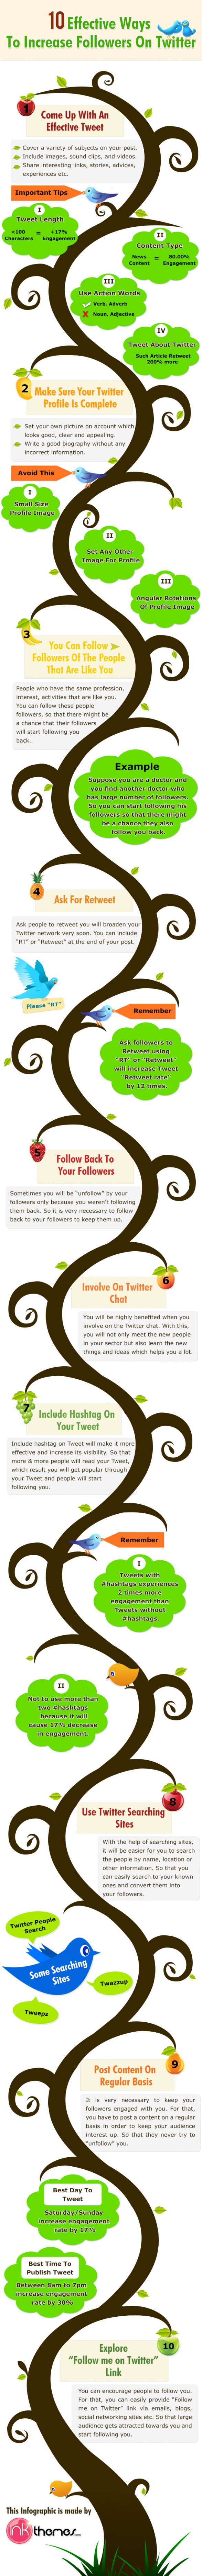 10 Effective Ways To Increase Followers On Twitter